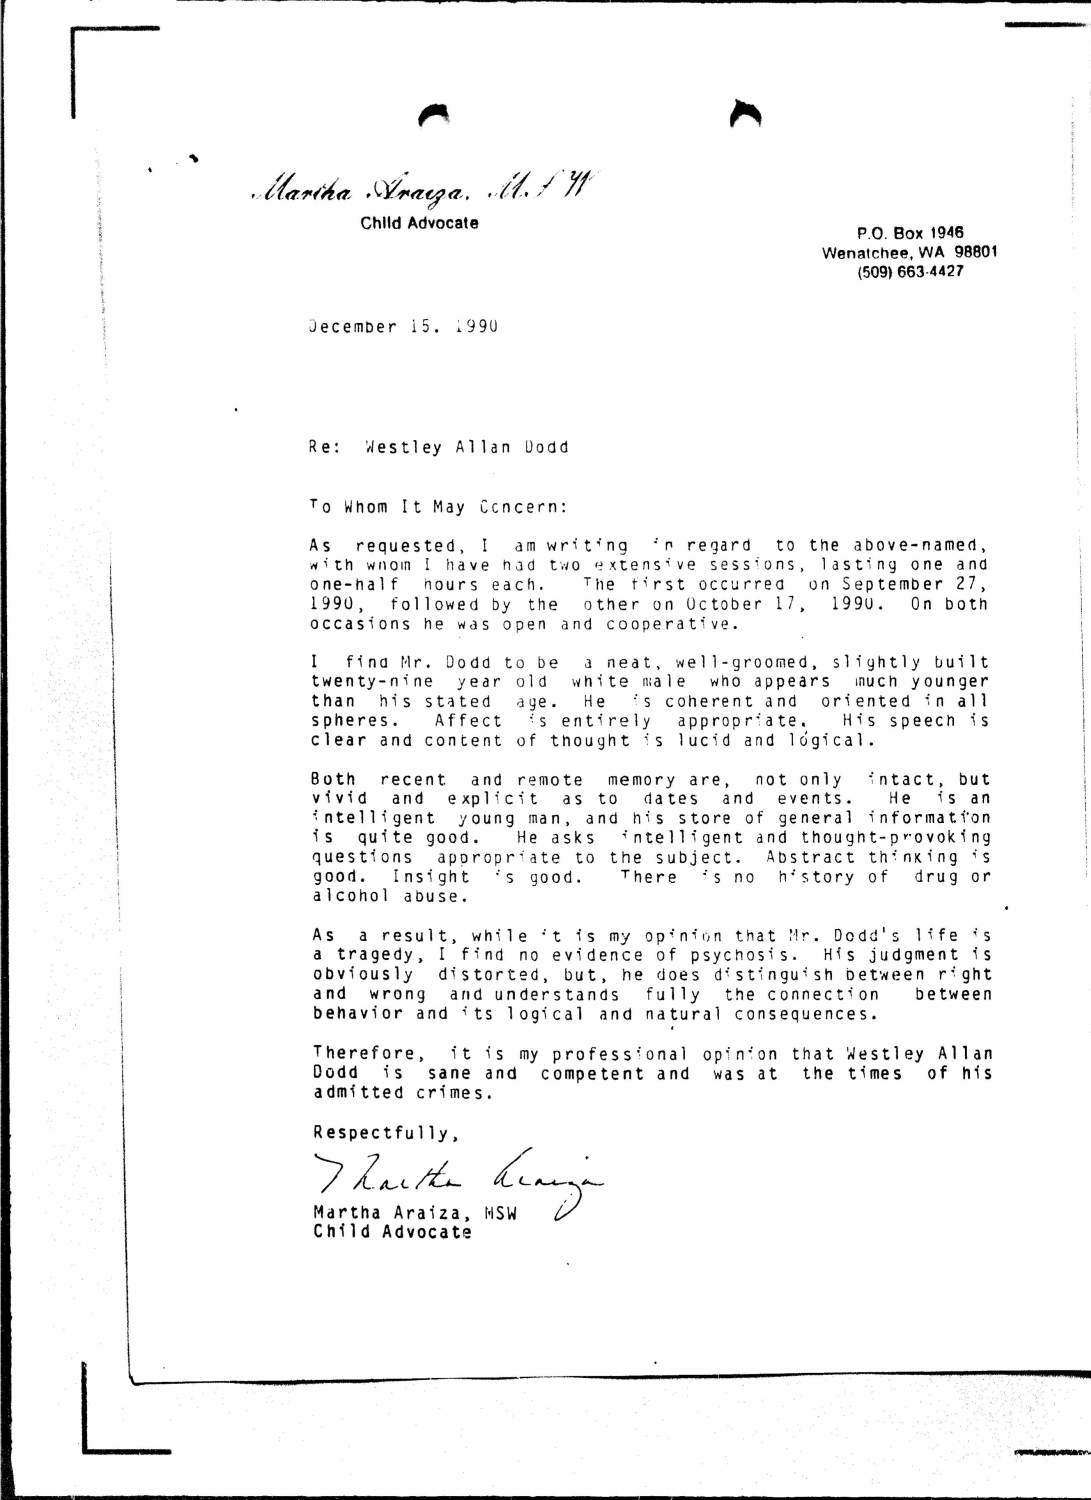 Letter filed to the Supreme Court of Washington state on behalf of Westley Allan Dodd where he asserts his desire to be executed quickly and waive his remaining appeals. Page 5 of 5.